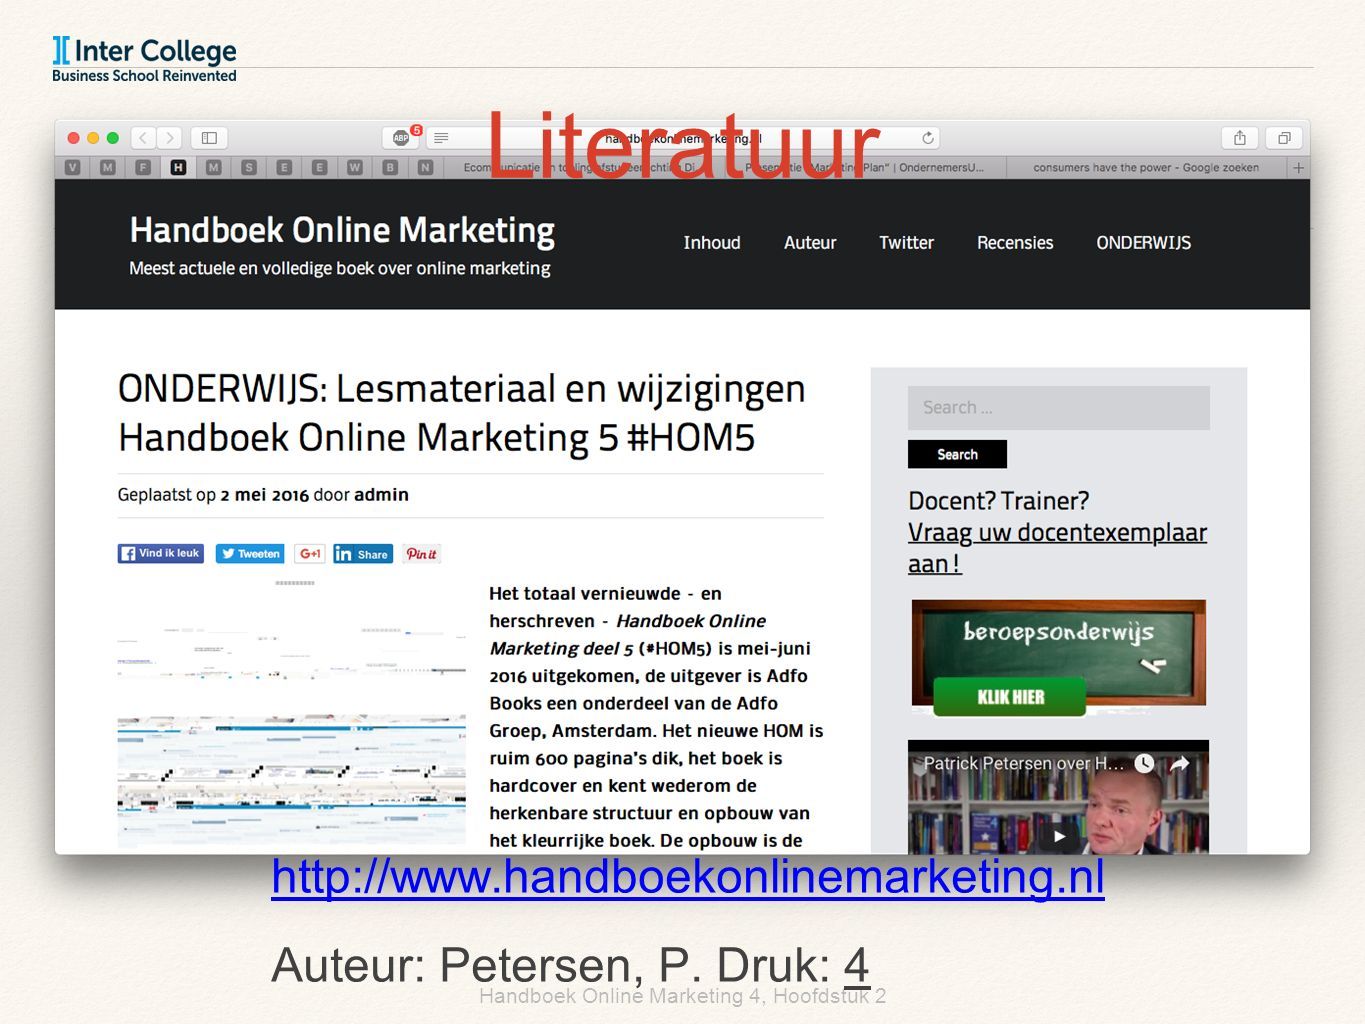 Handboek Online Marketing 4, Hoofdstuk 2 Literatuur http://www.handboekonlinemarketing.nl Auteur: Petersen, P.